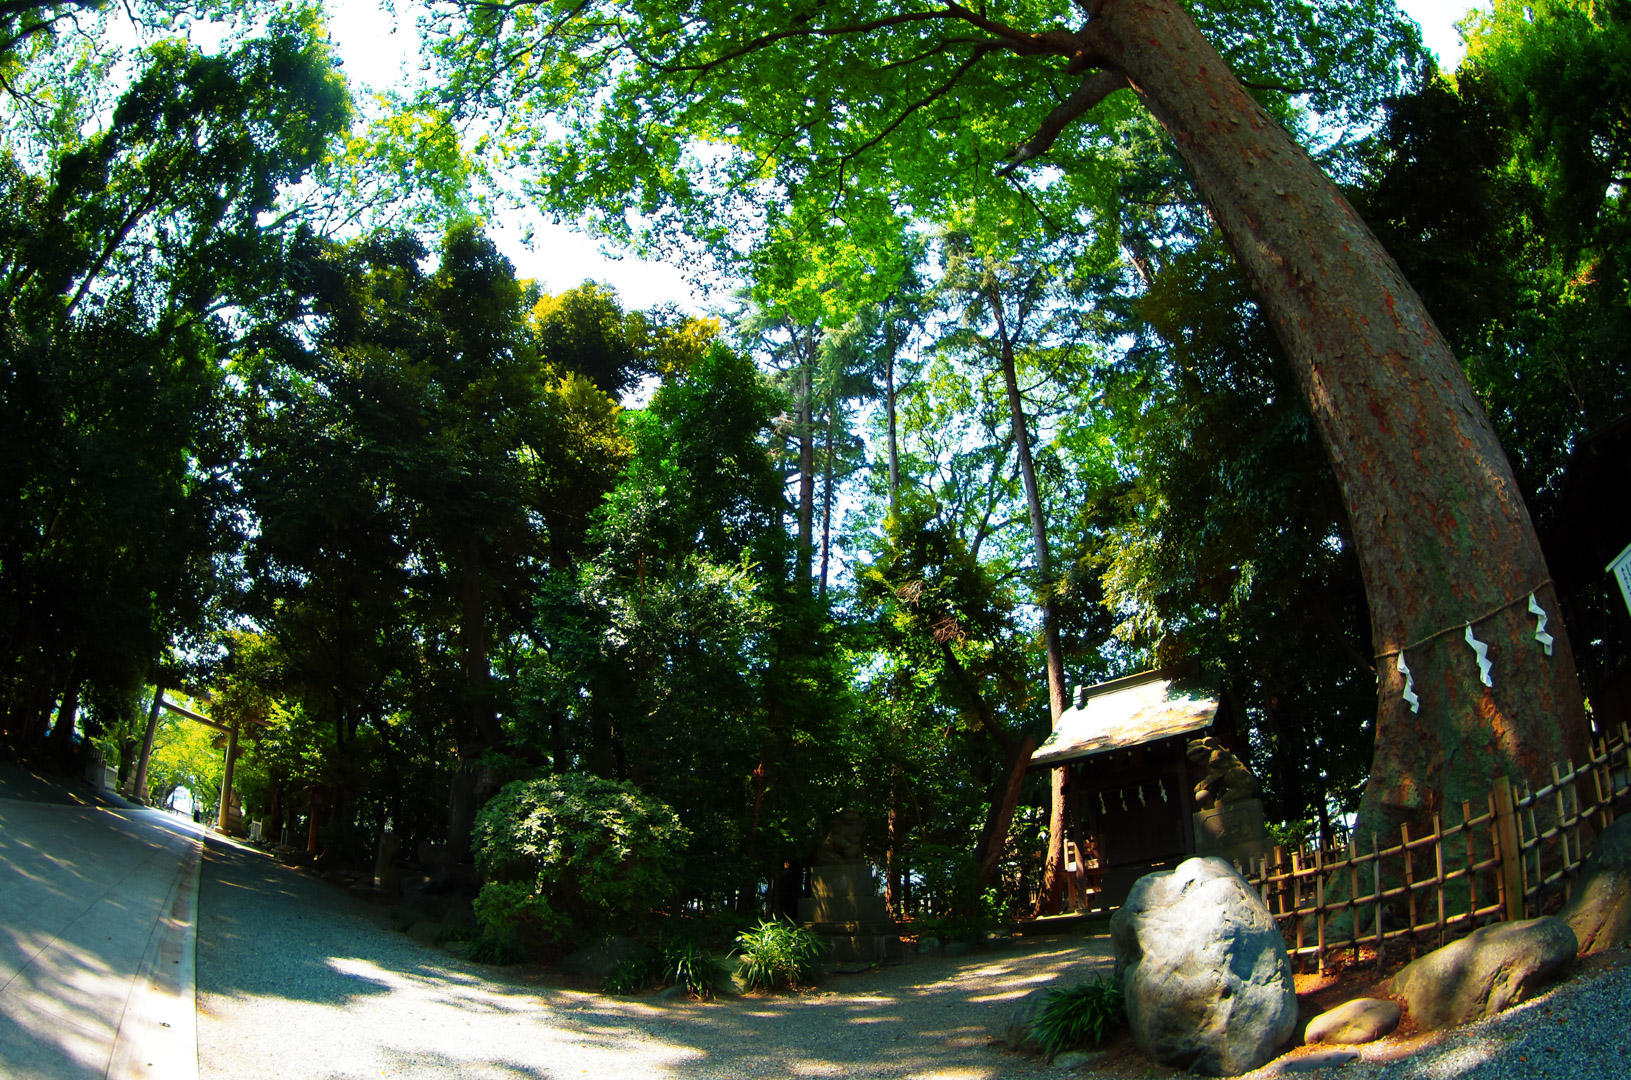 smc PENTAX-DA FISH-EYE 10-17mm F3.5-4.5